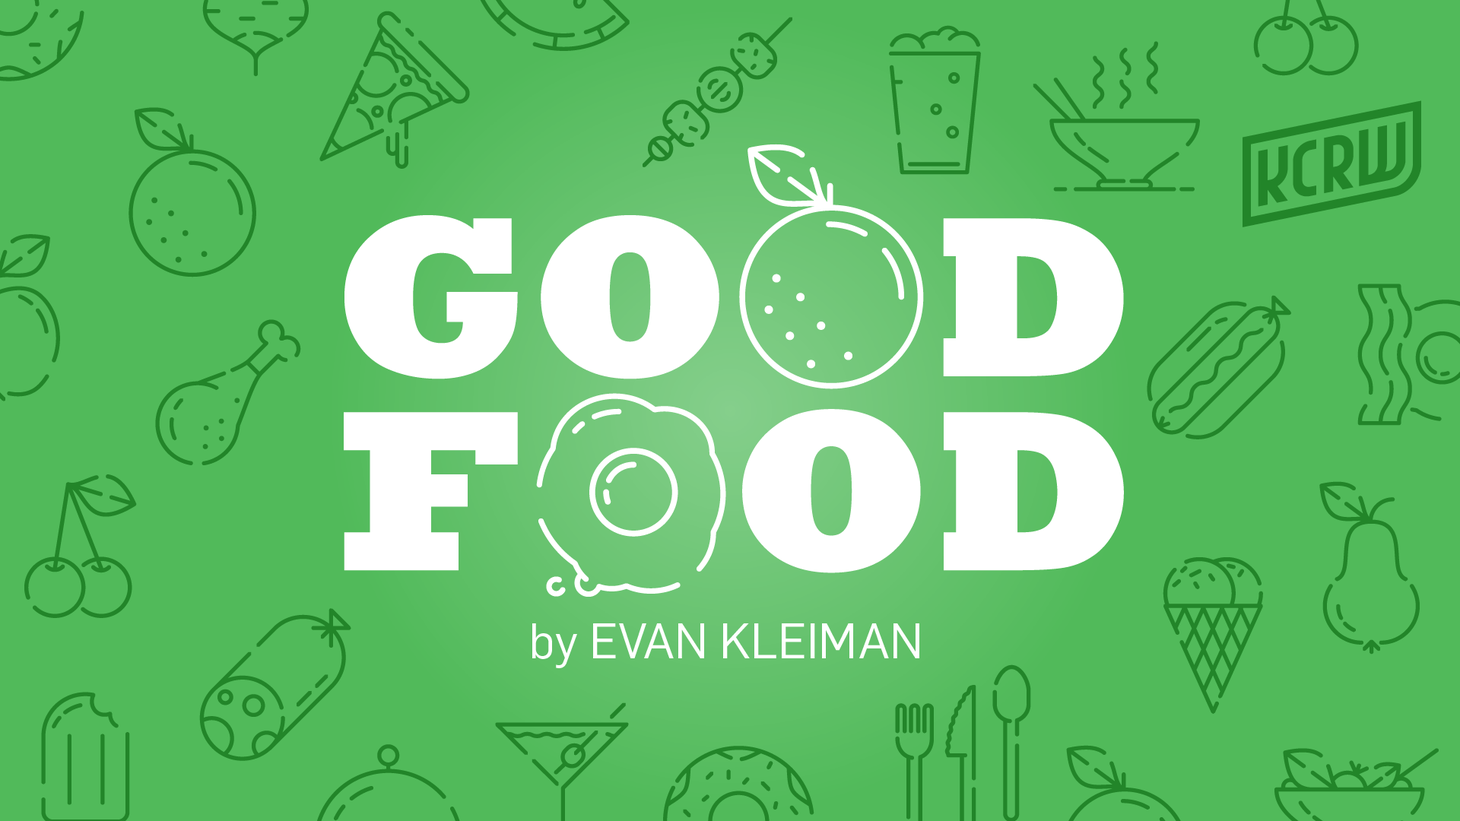 This Saturday on Good Food, host Evan Kleiman talks about the way grocery stores make their money. The famed restaurant Valentino turns 30 years old this week; owner Piero Selvaggio joins Evan to discuss how he's maintained this legendary institution. Jimmy Carter will receive the Nobel Prize this Monday and the celebratory dinner is a special affair. . . tune in to find out what's on the top secret menu.  Listeners will also  get a list of some of the best cookbooks to buy this season with the owner of the Cook's Library bookstore, just in time for the holidays! All that, plus The Market Report.